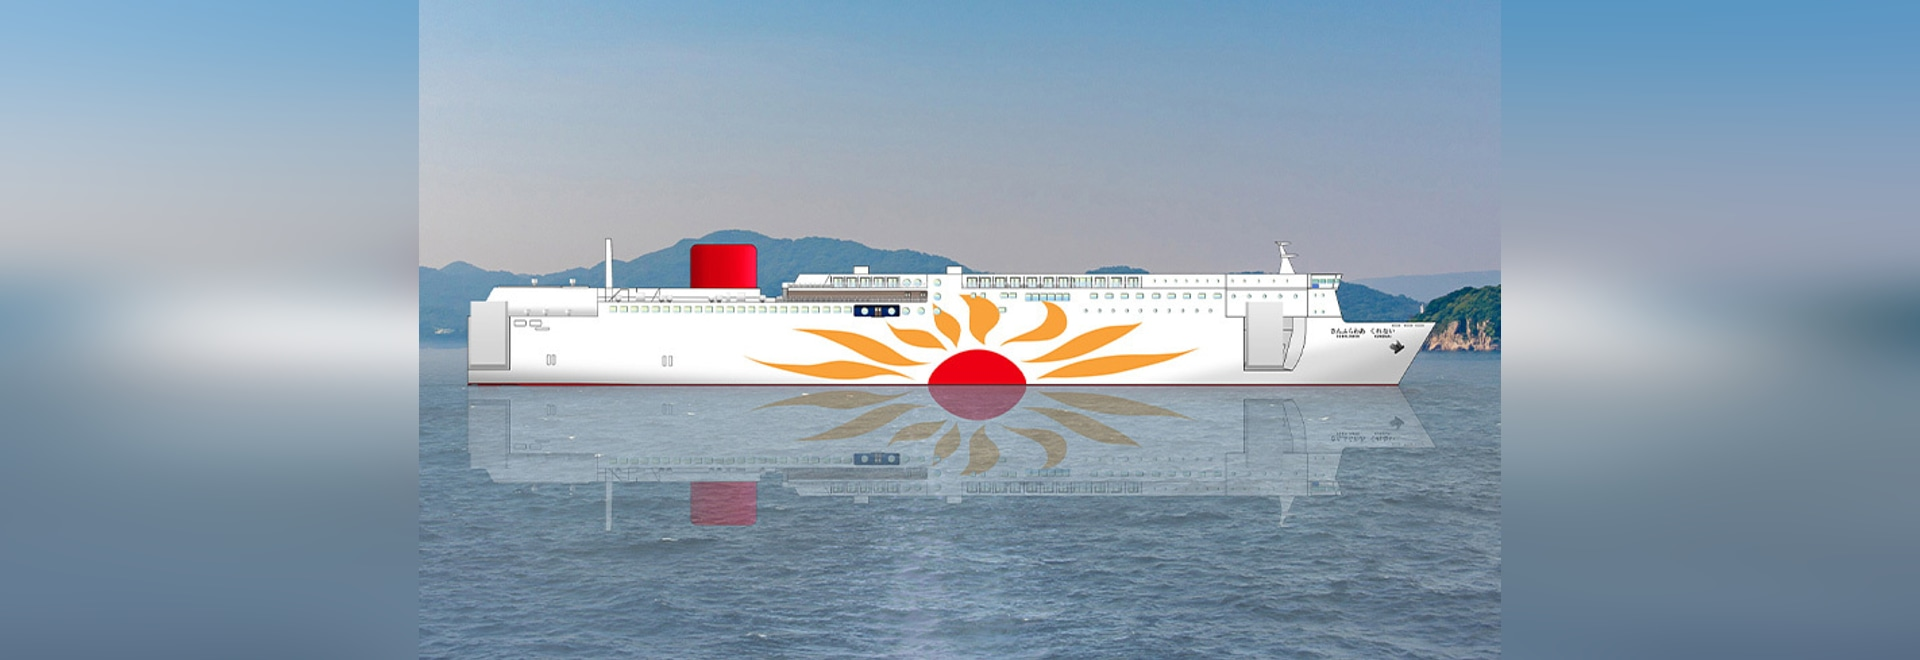 The new MOL ferries will operate with the Wärtsilä 31DF engine running on LNG fuel. Wärtsilä will also supply the gearbox and the LNGPac, fuel storage, supply and control system.